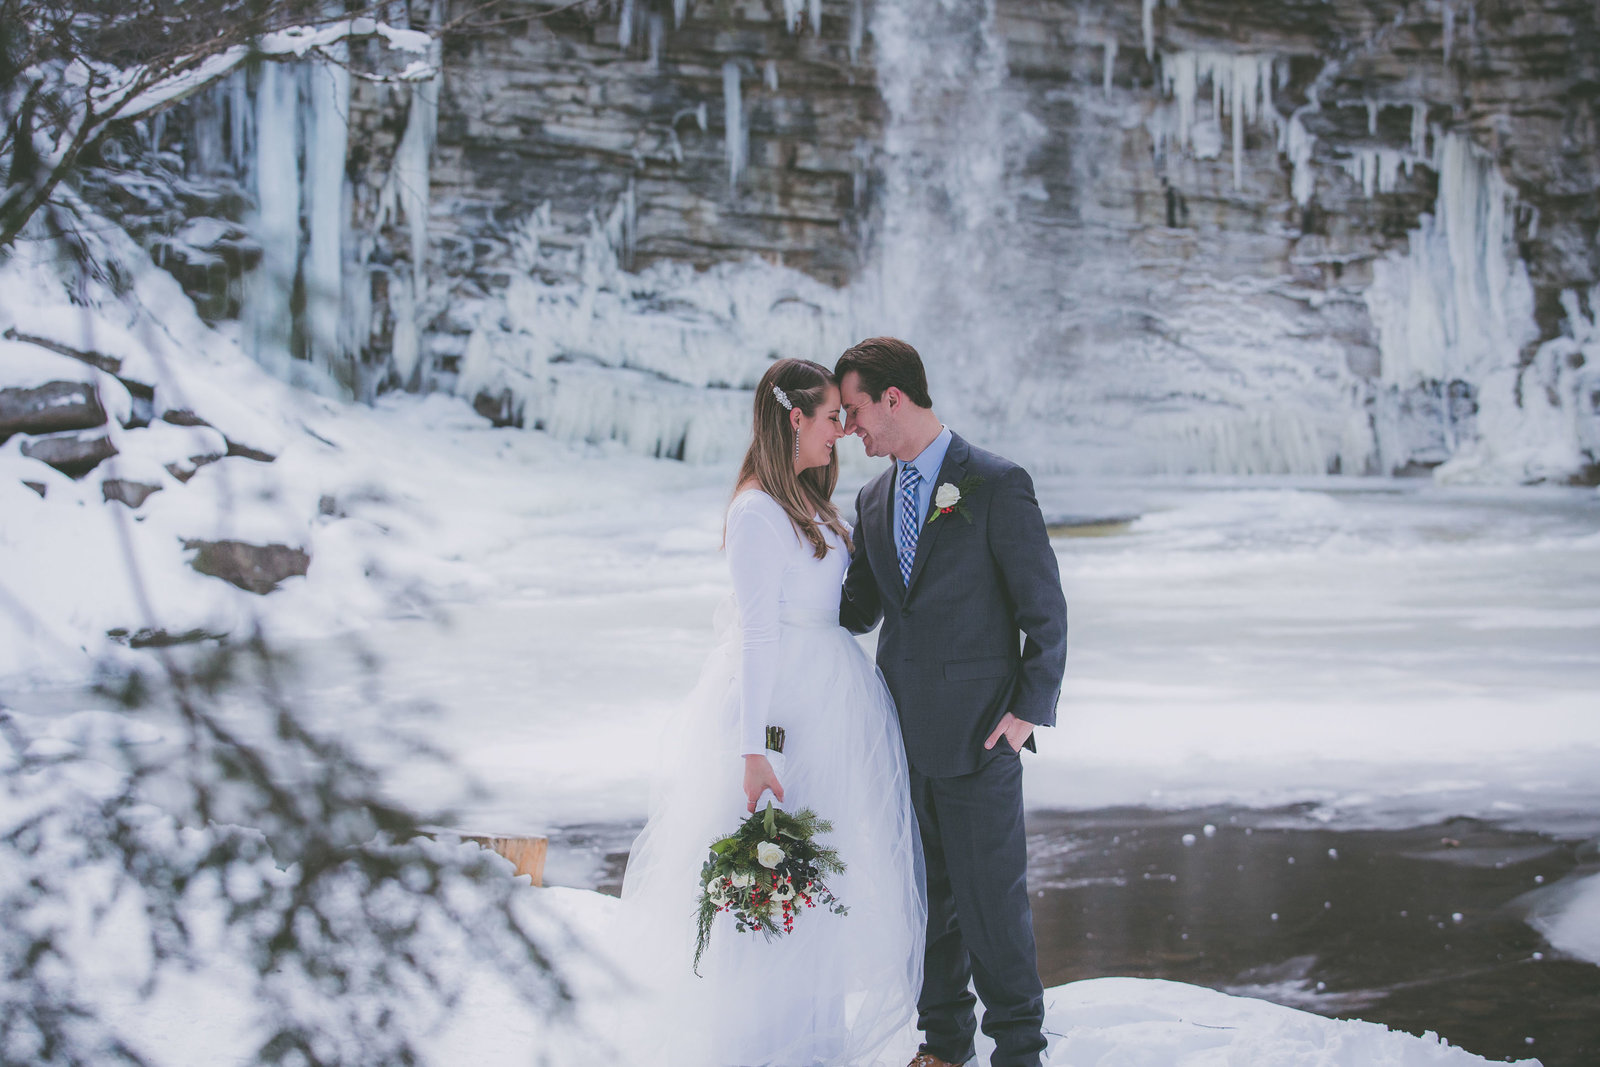 Couple touches foreheads with waterfall view in winter surrounded by snow.